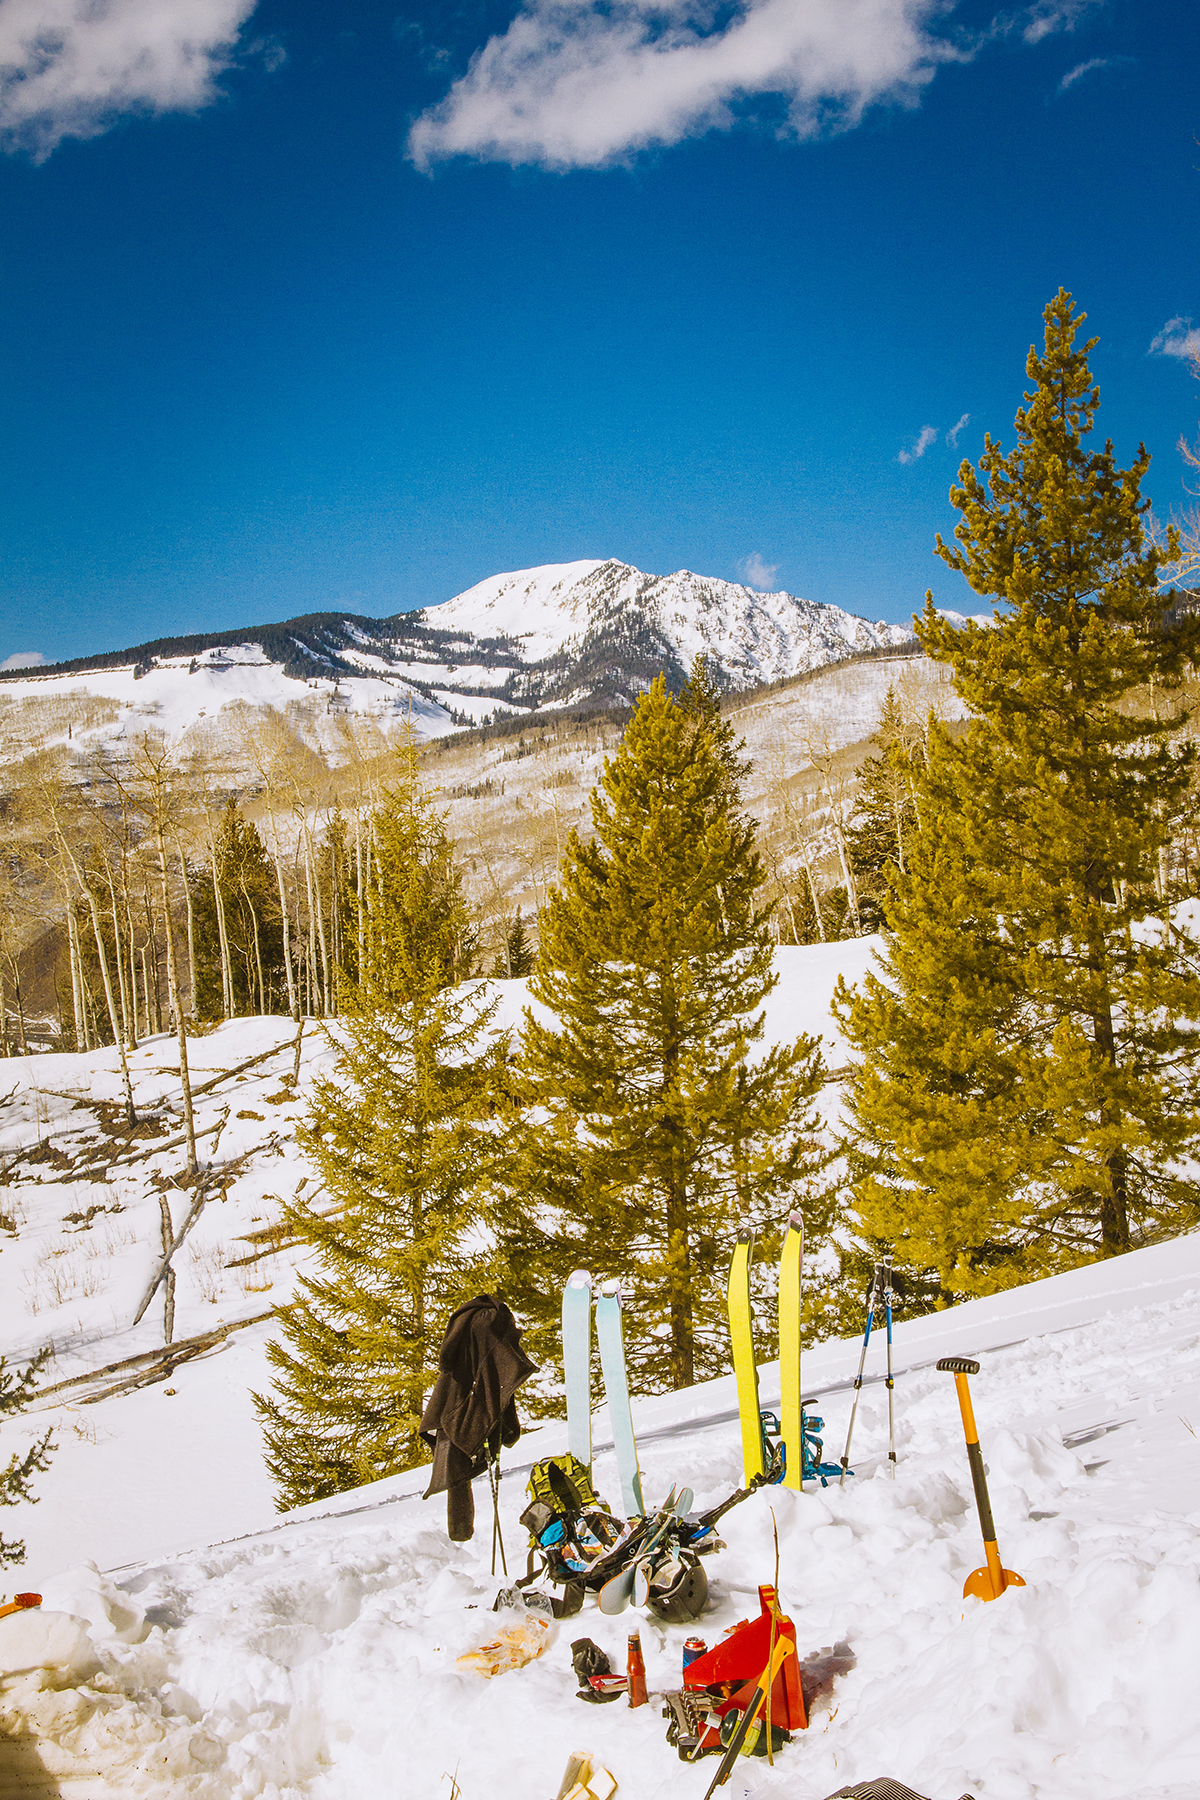 A Bluebird Day in Park City with Ski Gear Stuck into the Snow